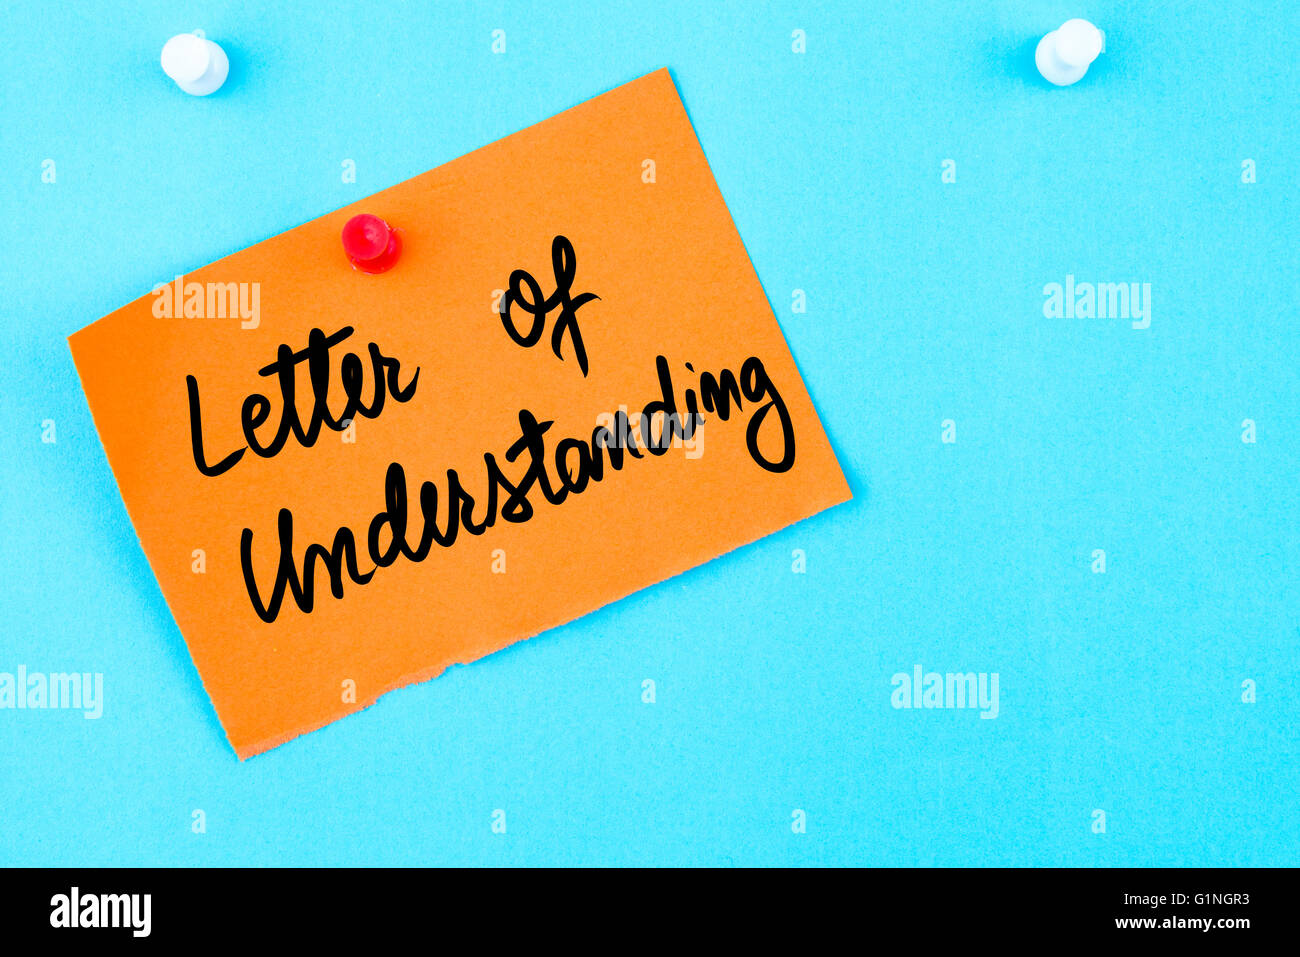 Letter Of Understanding written on orange paper note pinned on cork board with white thumbtack, copy space available - Stock Image